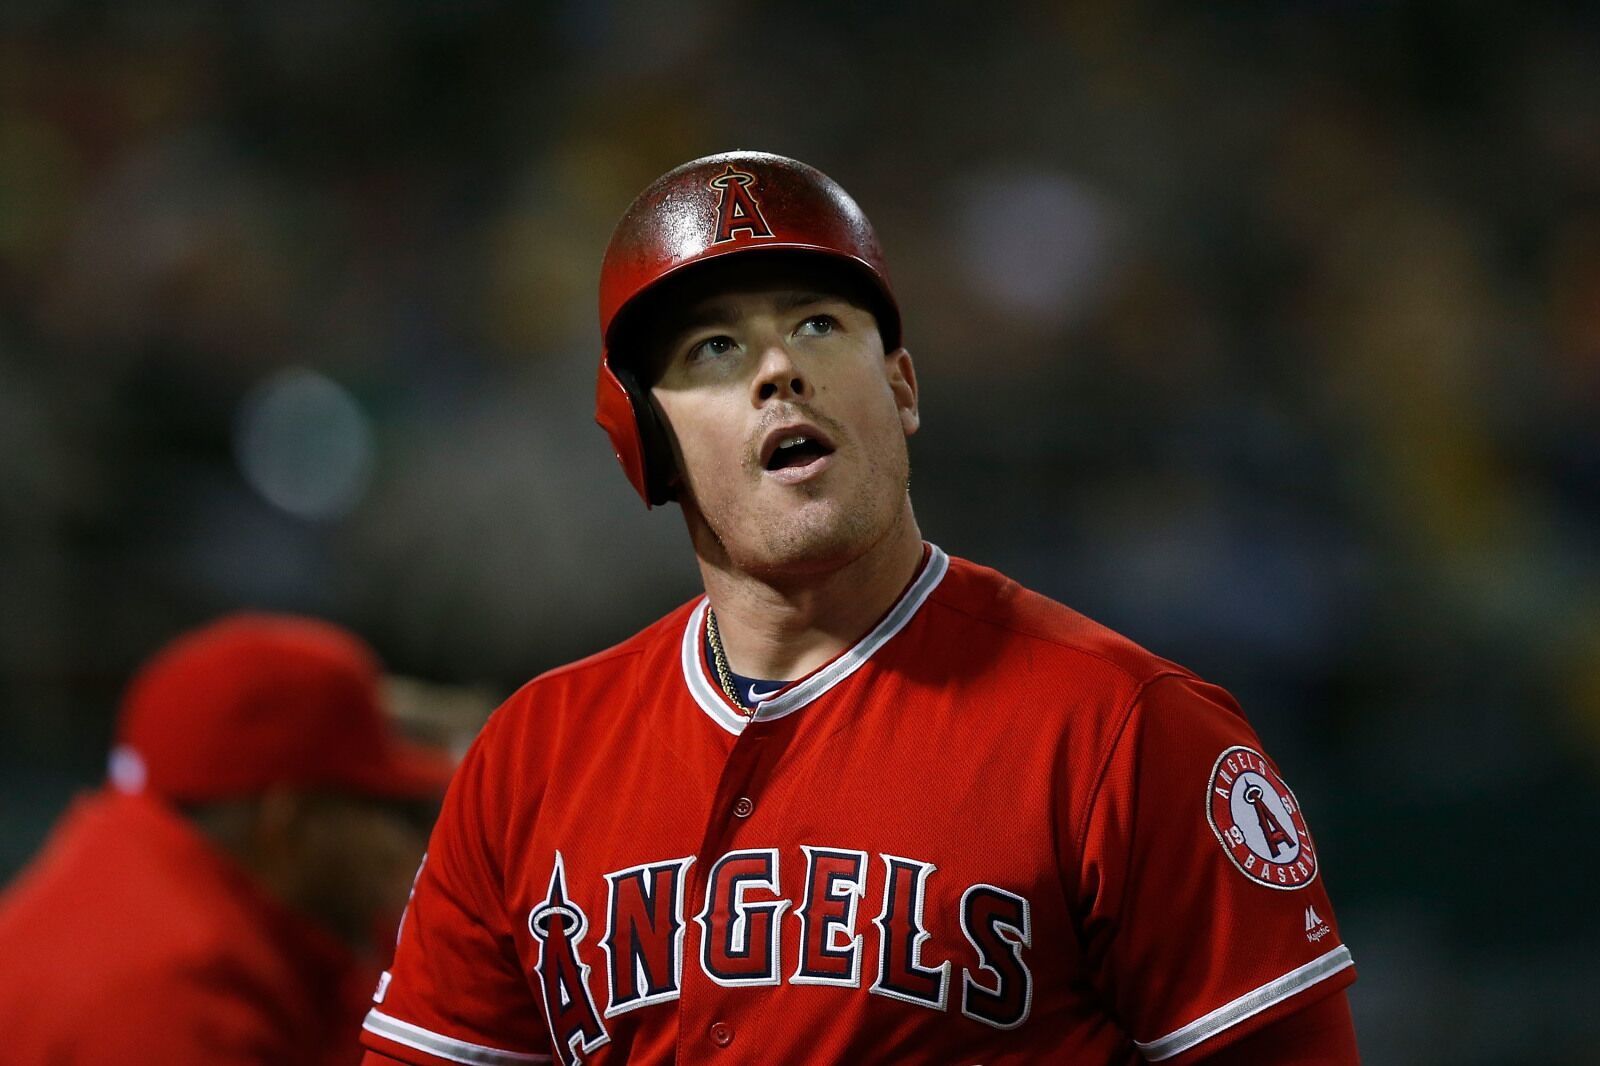 OAKLAND, CA - MARCH 30: Justin Bour #41 of the Los Angeles Angels of Anaheim walks back to the dugout after being called out on strikes in the top of the eighth inning against the Oakland Athletics at Oakland-Alameda County Coliseum on March 30, 2019 in Oakland, California. (Photo by Lachlan Cunningham/Getty Images)